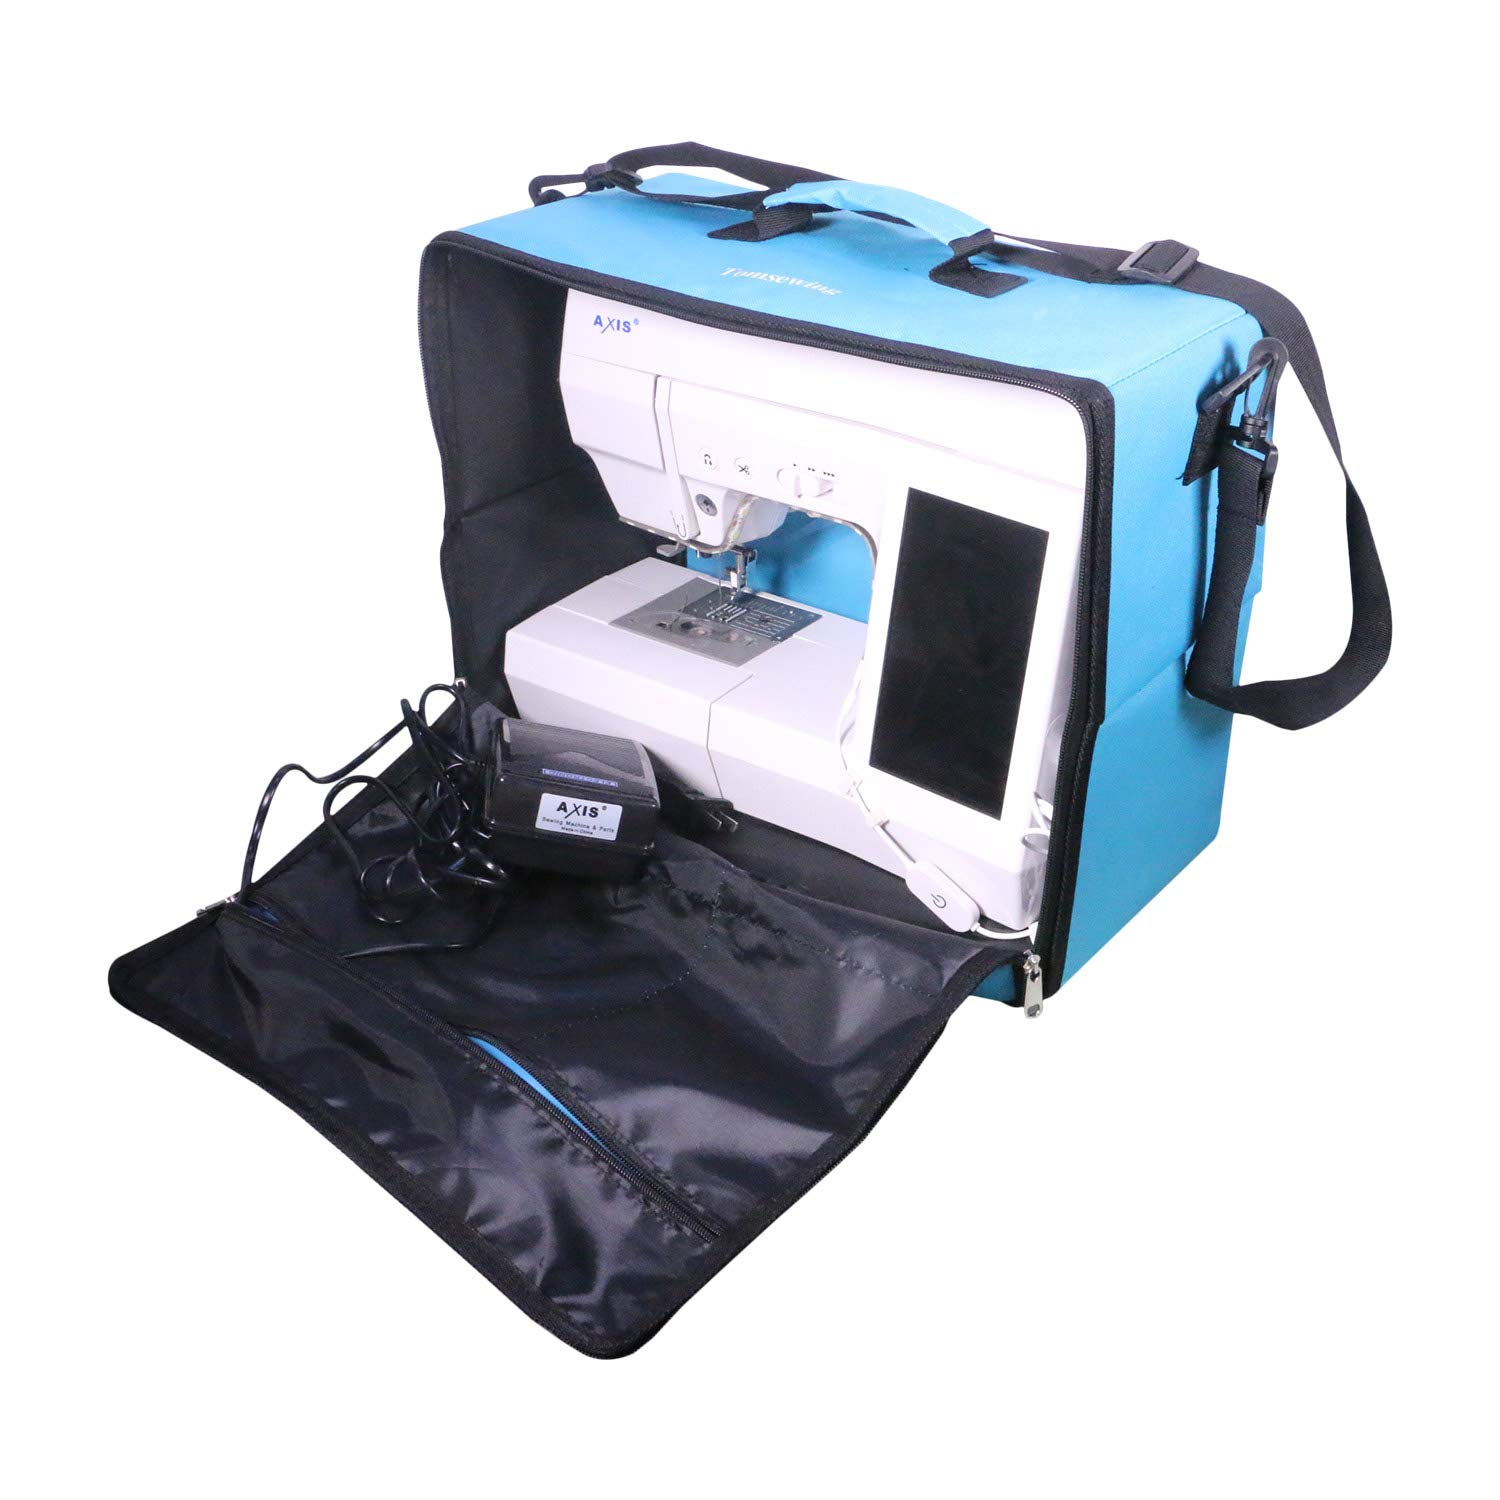 Foldable Sewing Machine Carry Case,Sewing Machine Carry Bag,Sewing Machine Storage Tote, with Waterproof Shoulder Strap - Idea for Travel Cover Storage AXIS FC001 Tomsewing